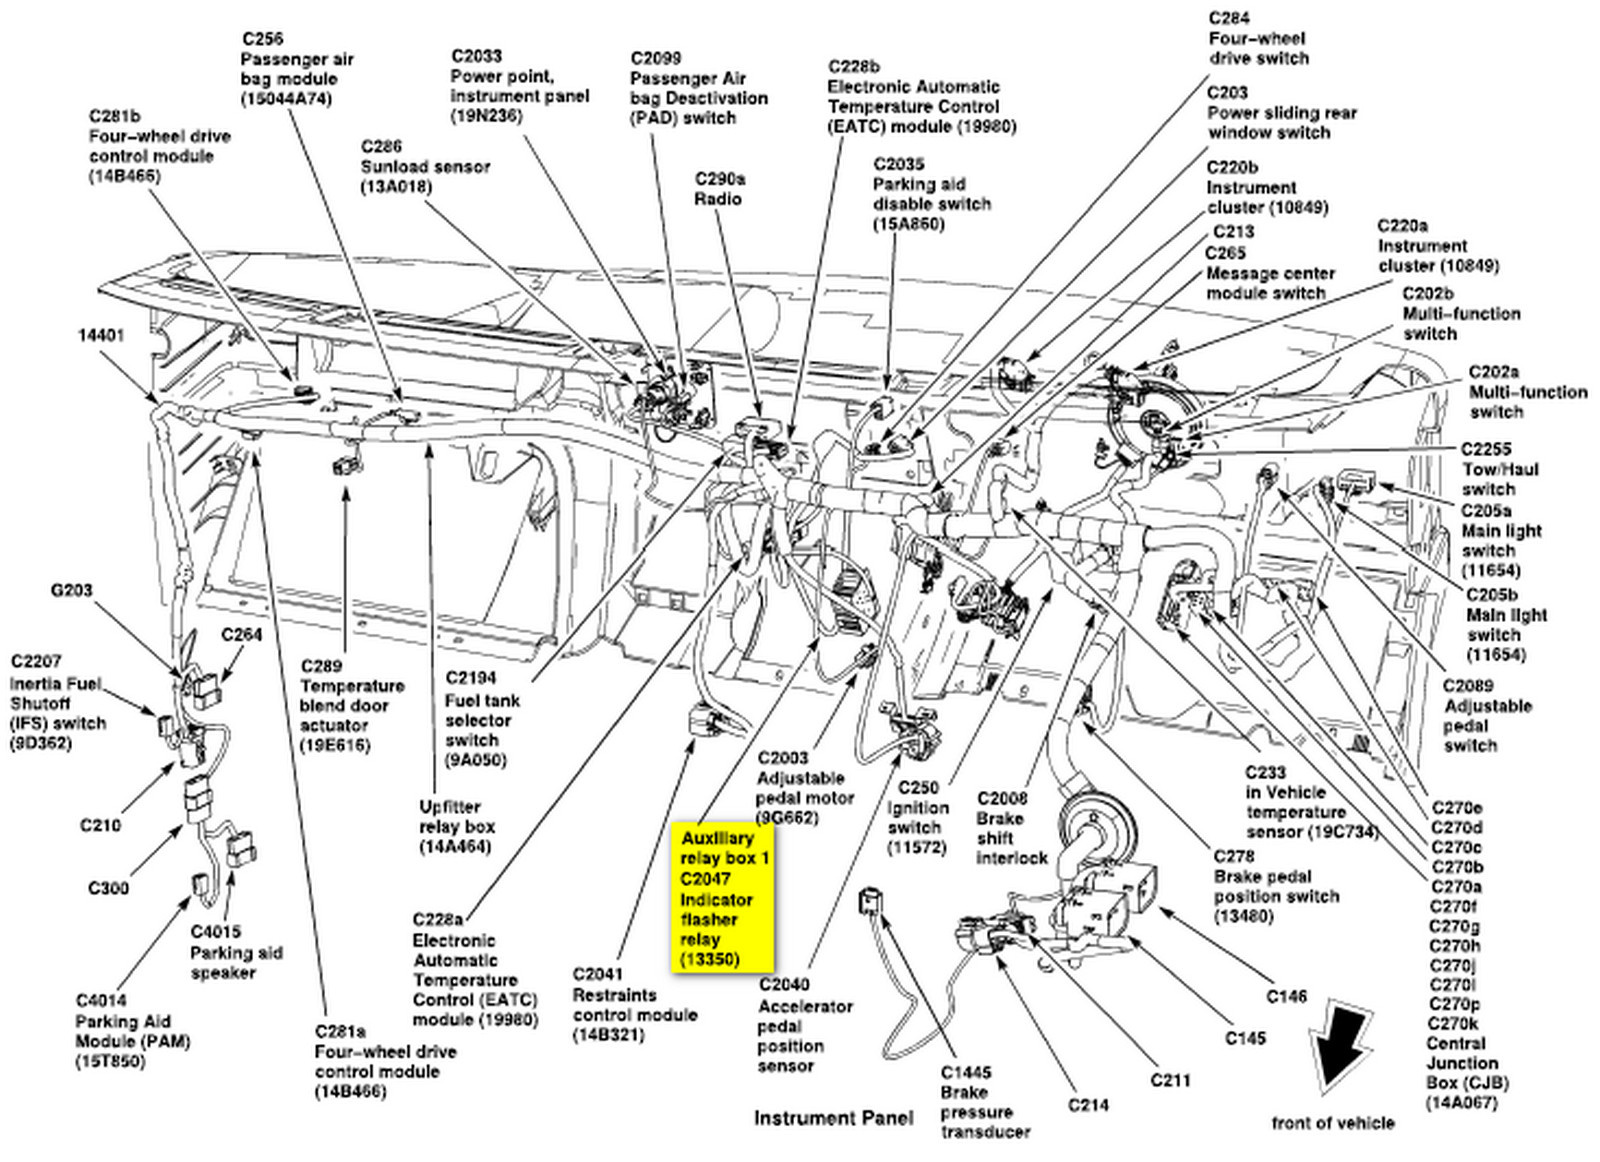 319403798544696825 additionally 3bxlv 92 Gmc Sierra 4 3l V6 Ignition Module Distributor as well T13849394 Carburetor hoses diagram likewise Discussion T60374 ds560387 furthermore 95 Suburban 1500 Engine Diagram. on 1986 gmc sierra fuel pump wiring diagram manual